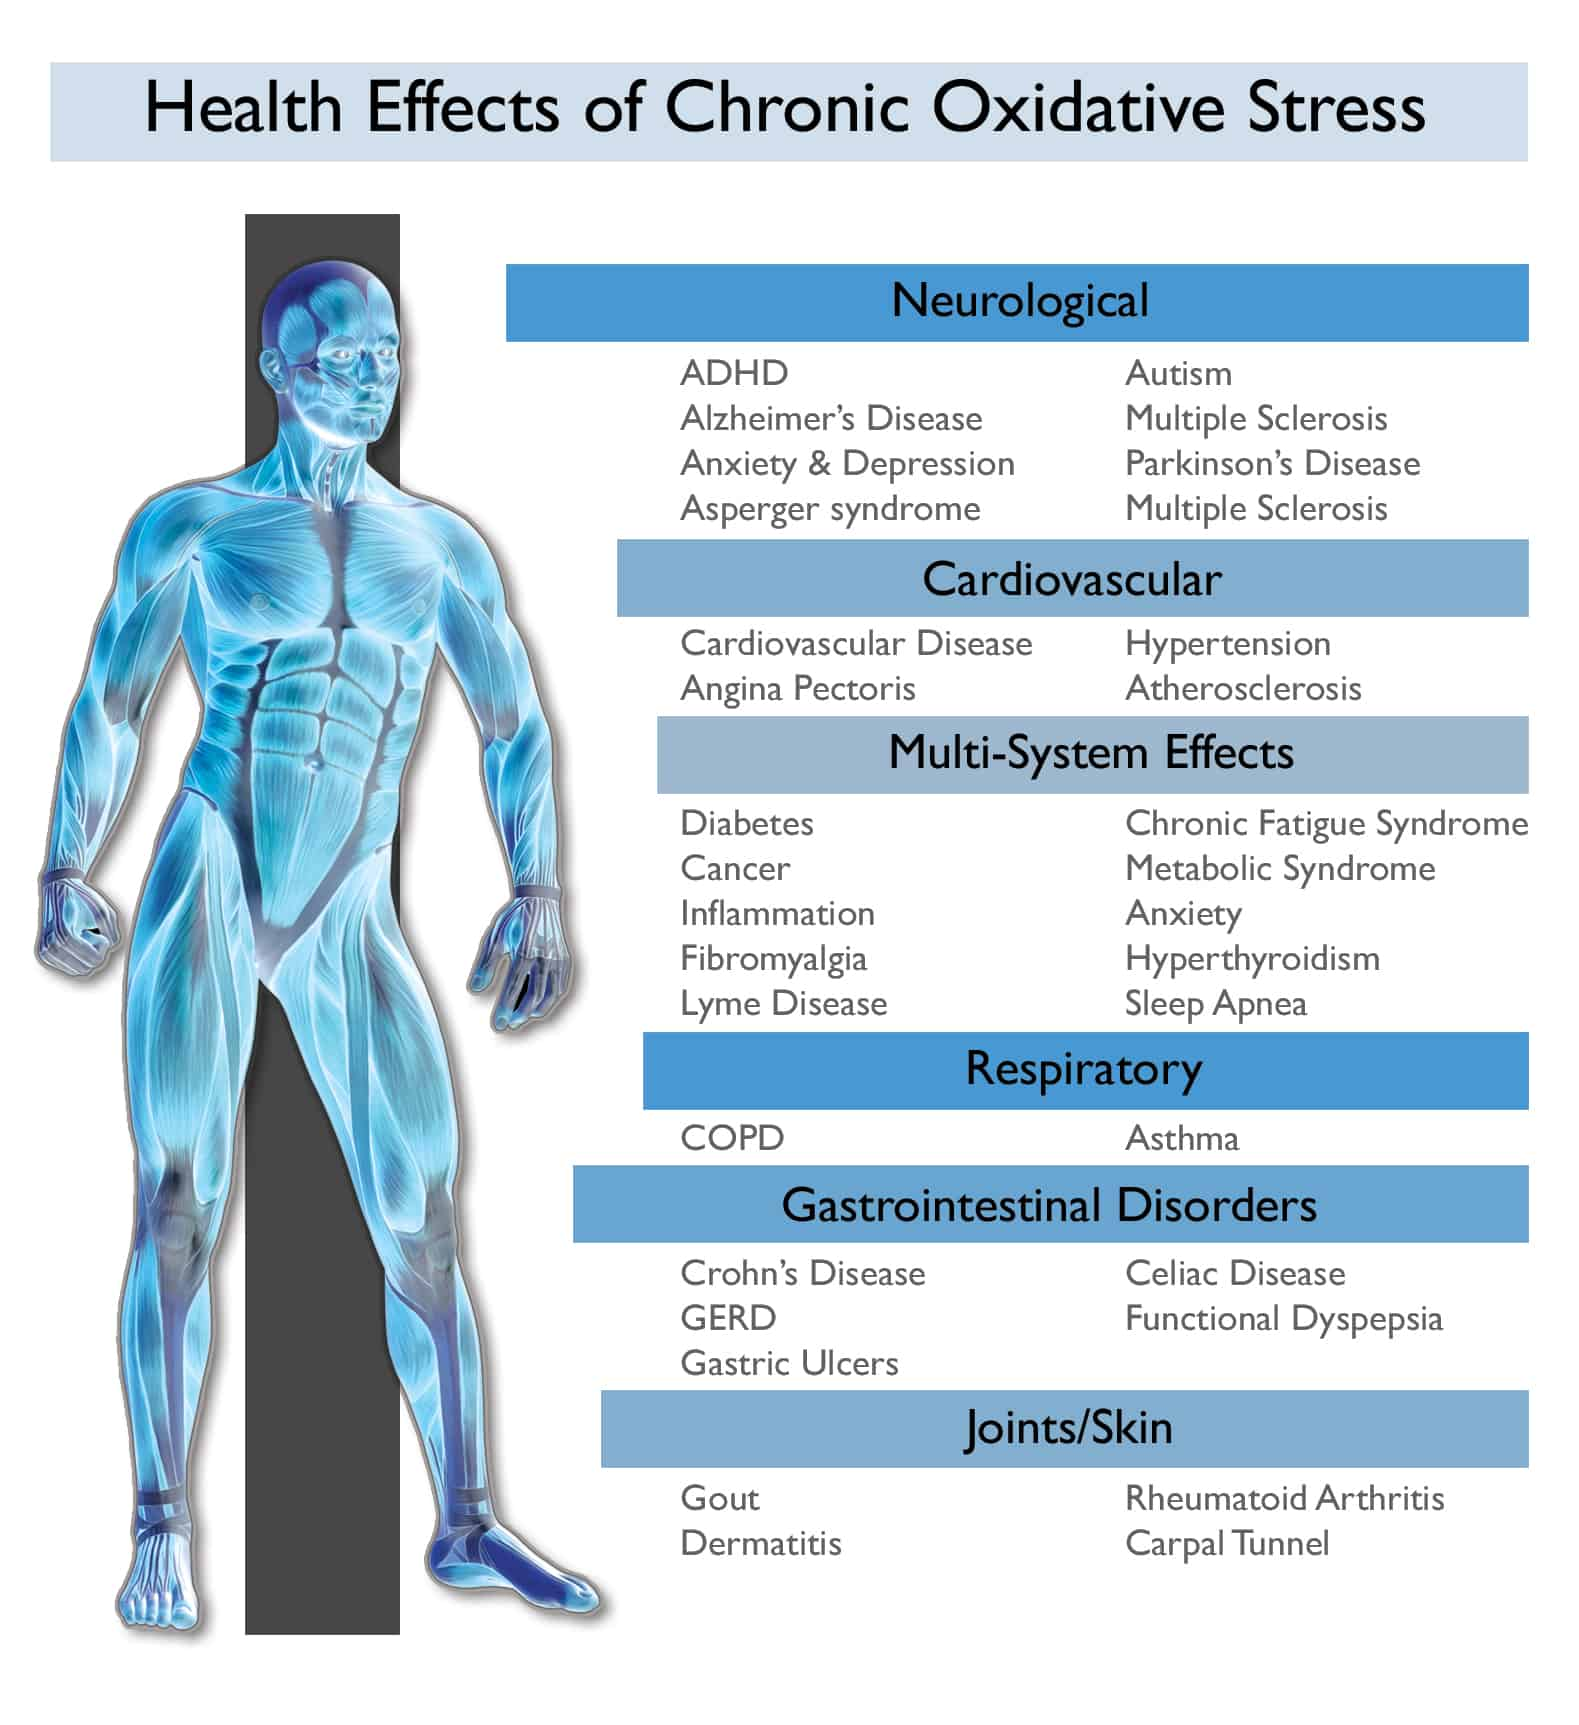 chronic-oxidative-stress-and-the-body (1)